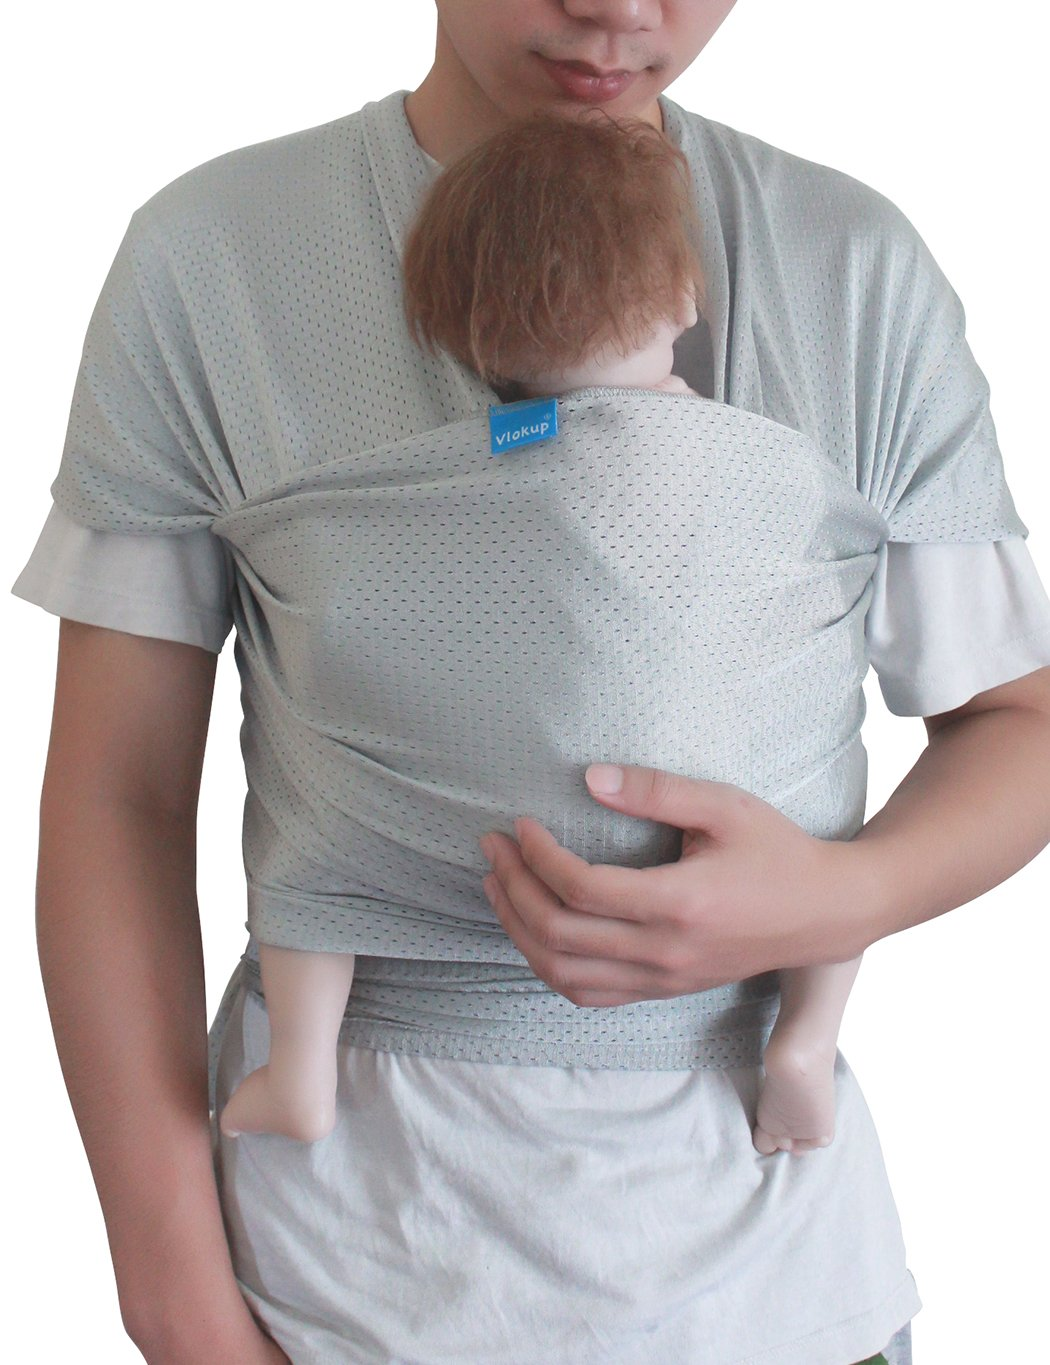 Vlokup Baby Wrap Water Sling Carrier Light Gray